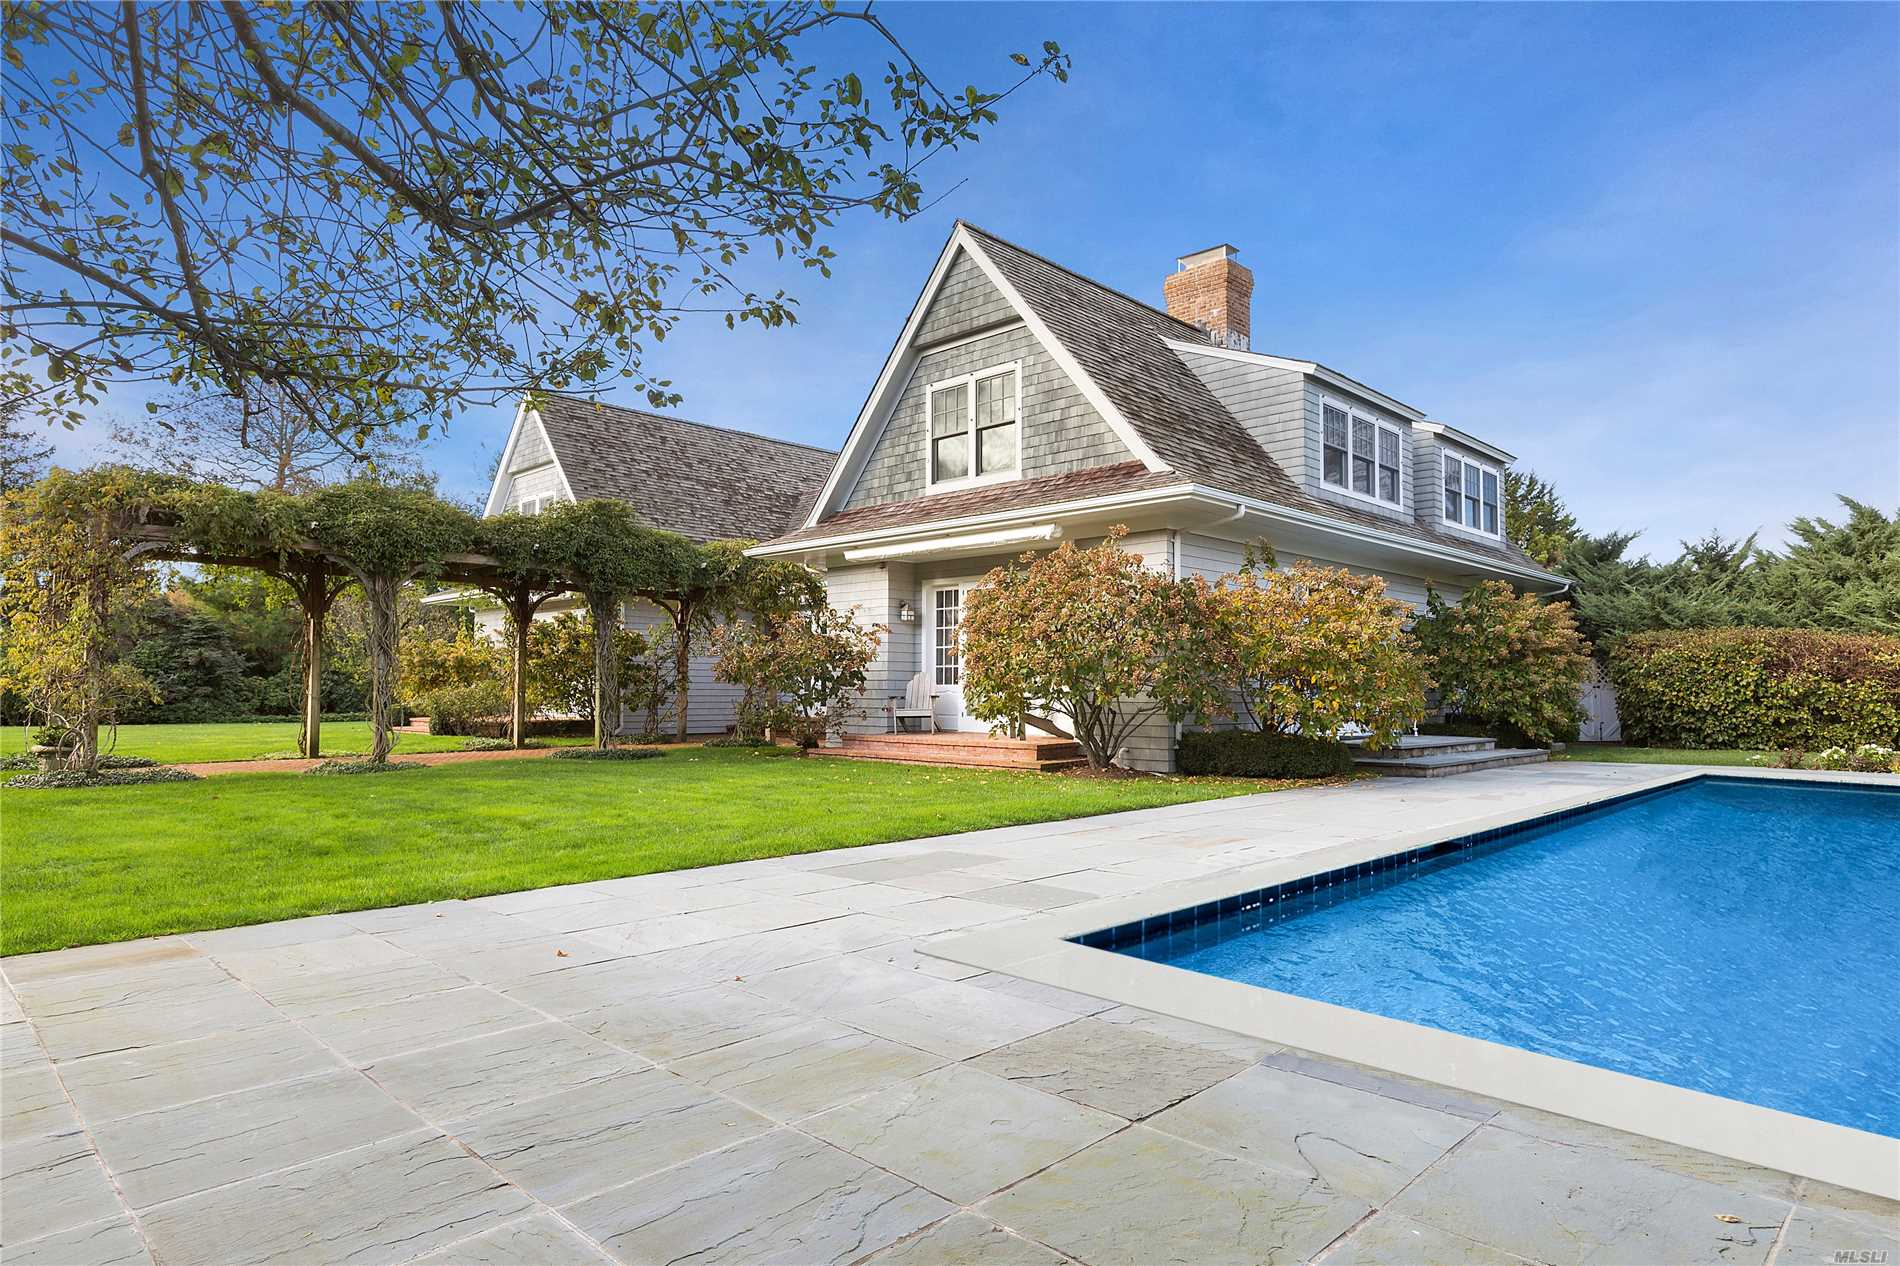 Photo of home for sale at 409 Bridge Ln, Sagaponack NY